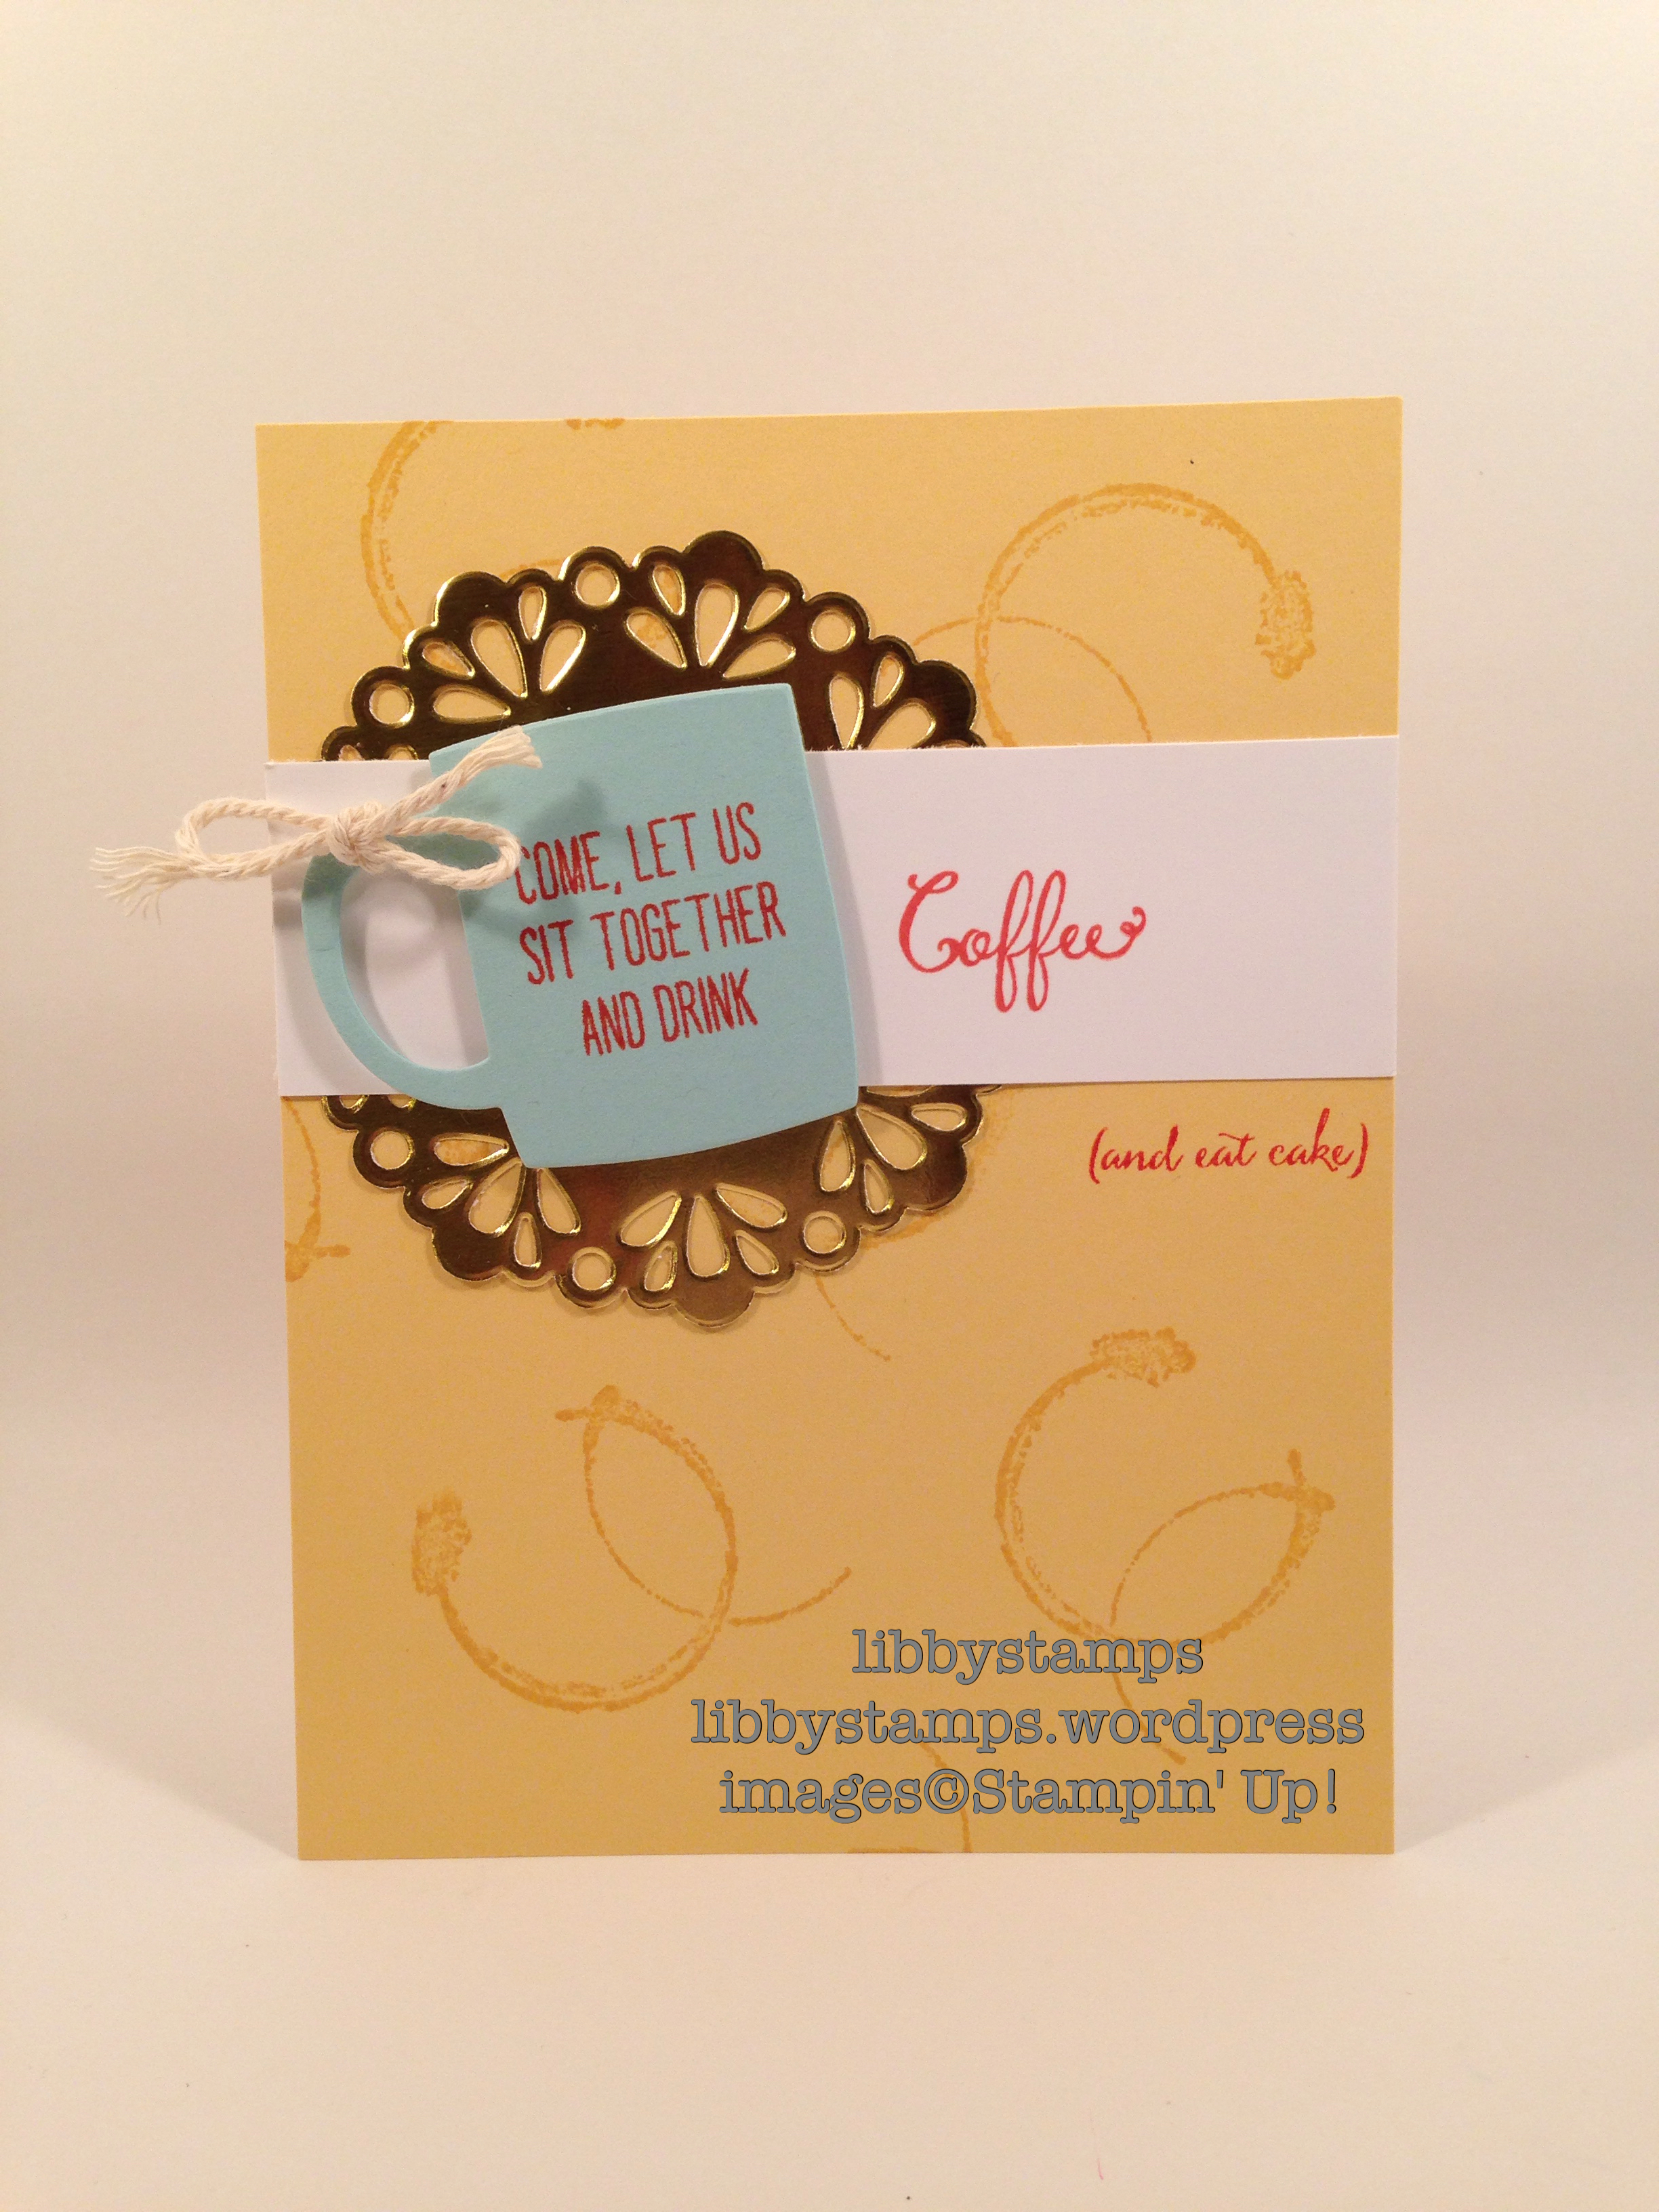 libbystamps, stampin up, Balloon Celebration, Timeless Textures, Cups & Kettle Framelits, Metallic Foil Doilies, FabFri84, GDP030